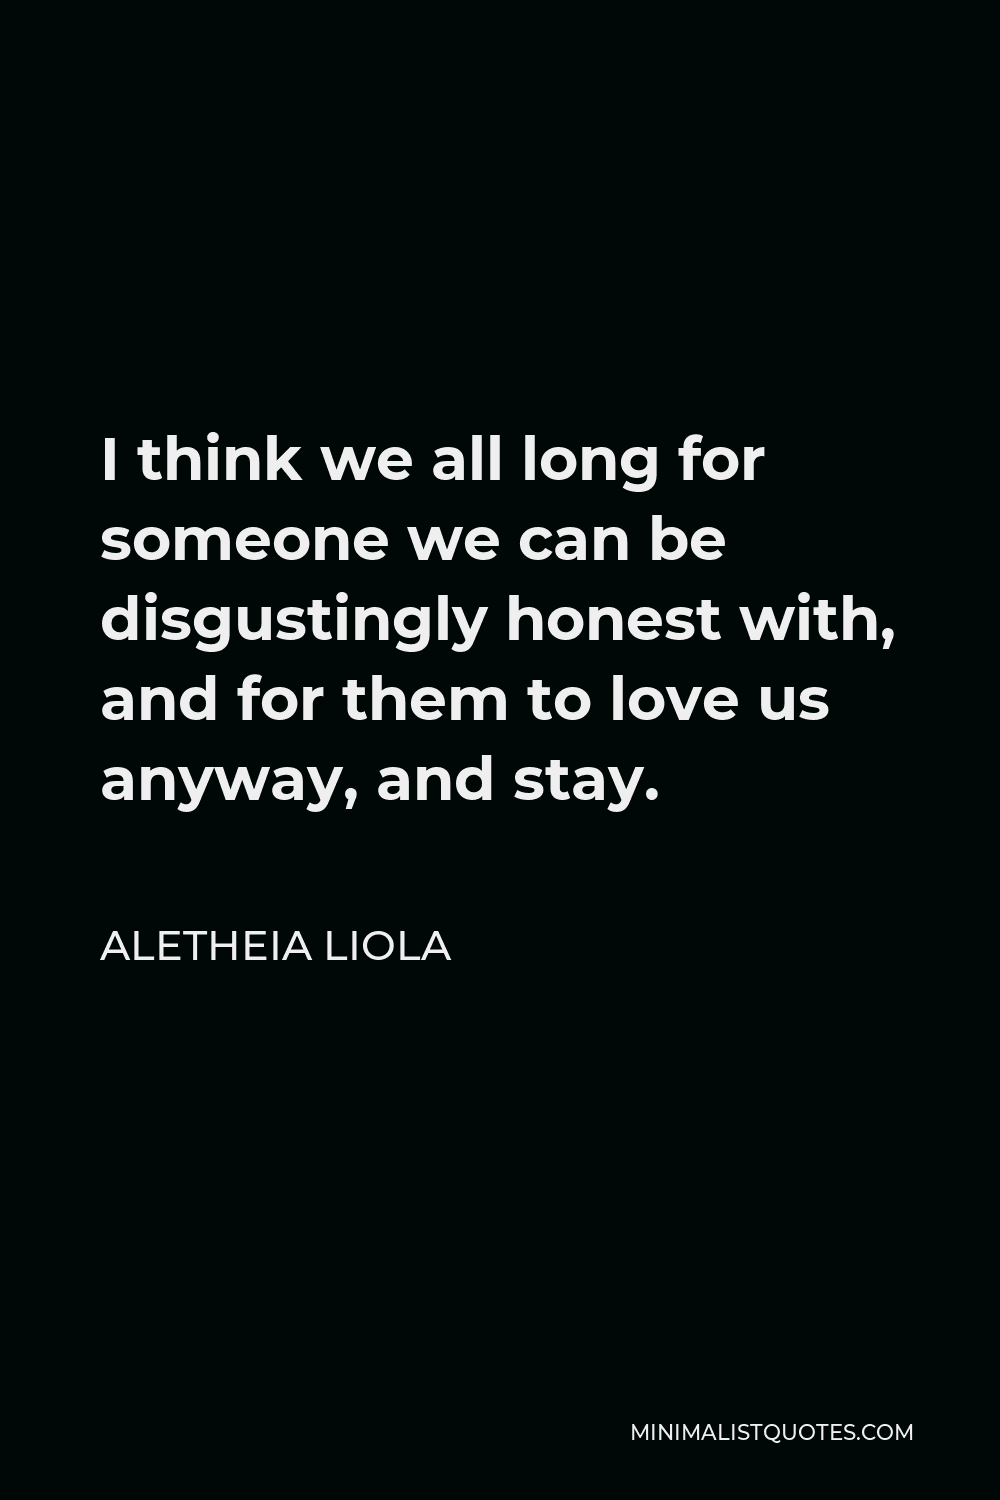 Aletheia Liola Quote - I think we all long for someone we can be disgustingly honest with, and for them to love us anyway, and stay.